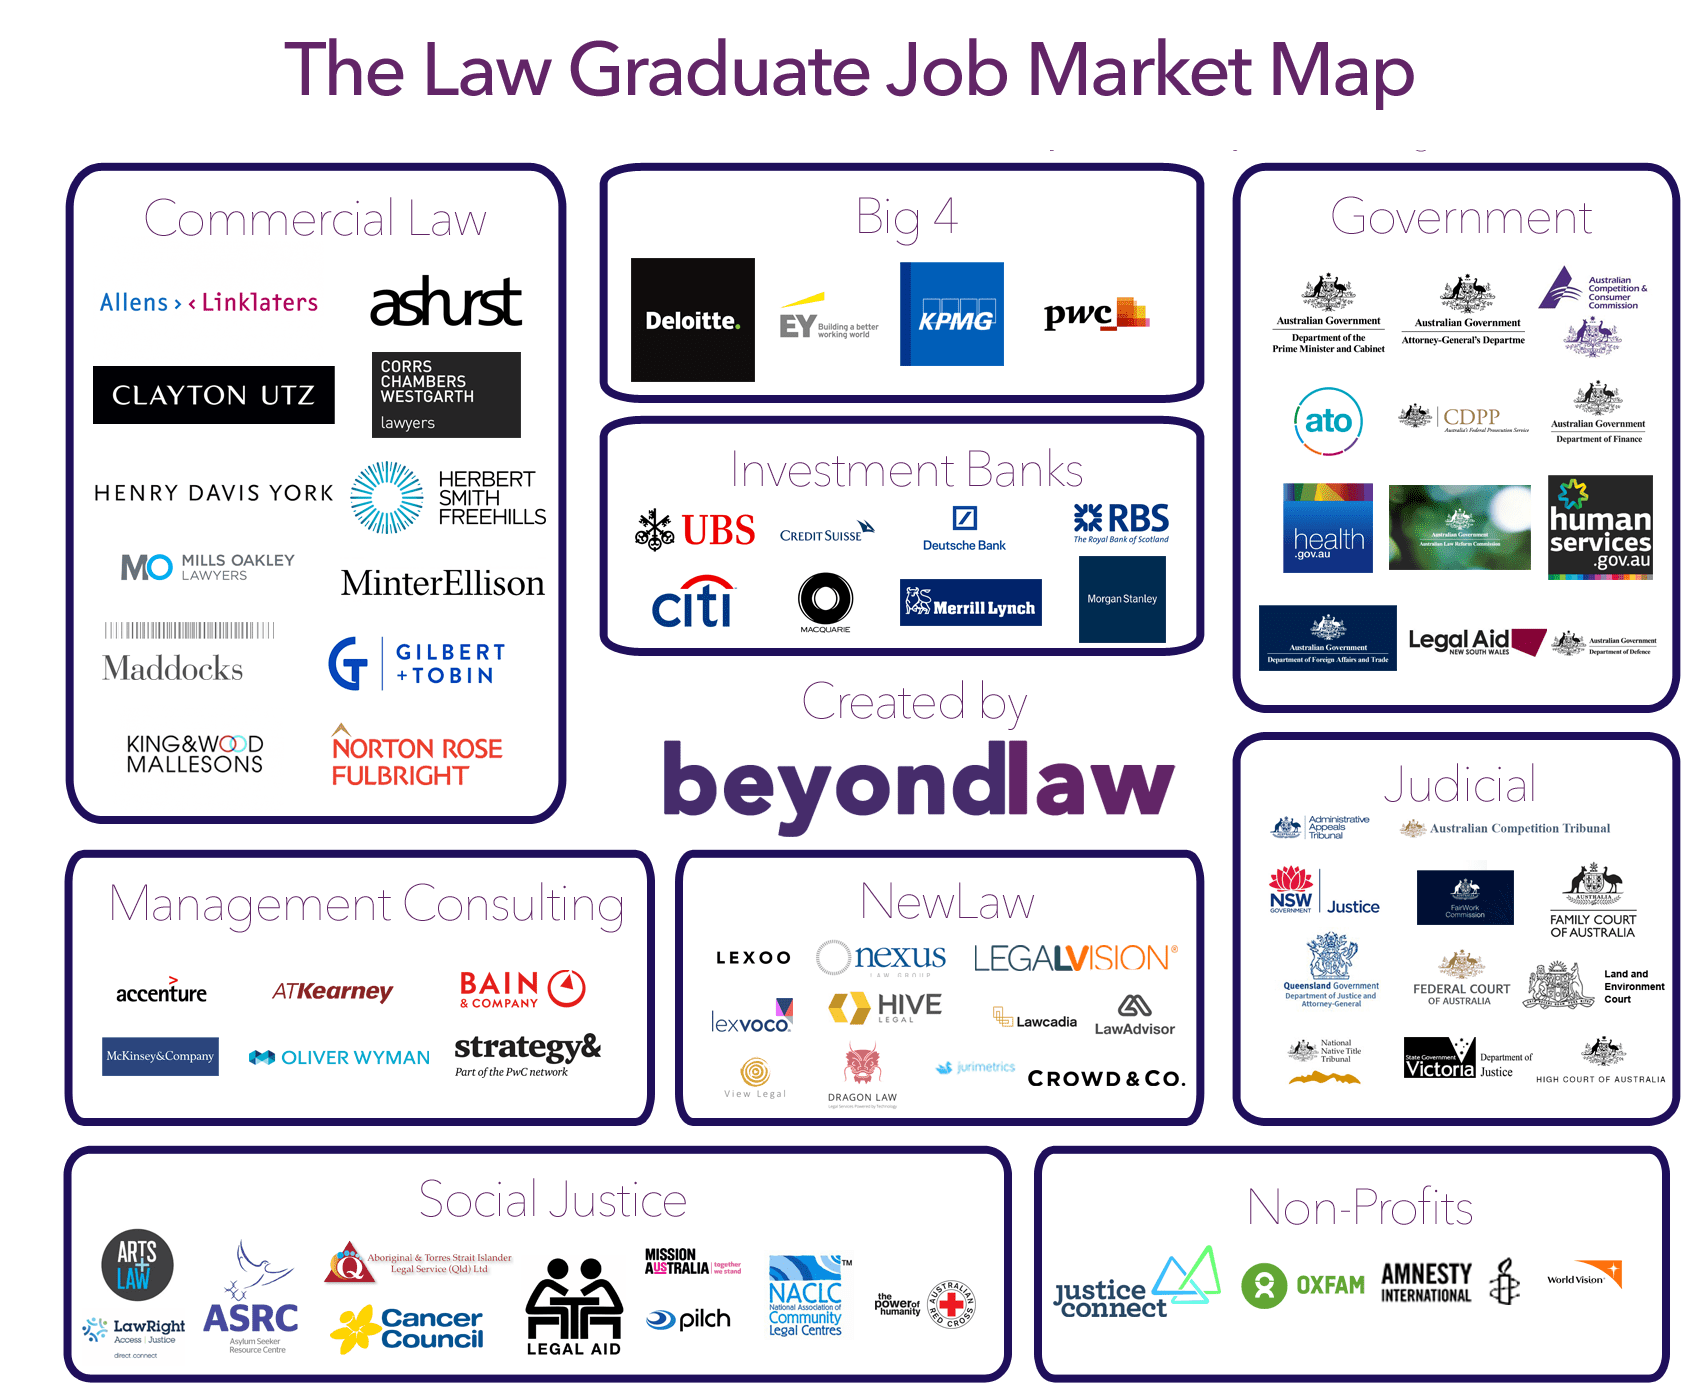 Beyond Law Graduate Job Market Map